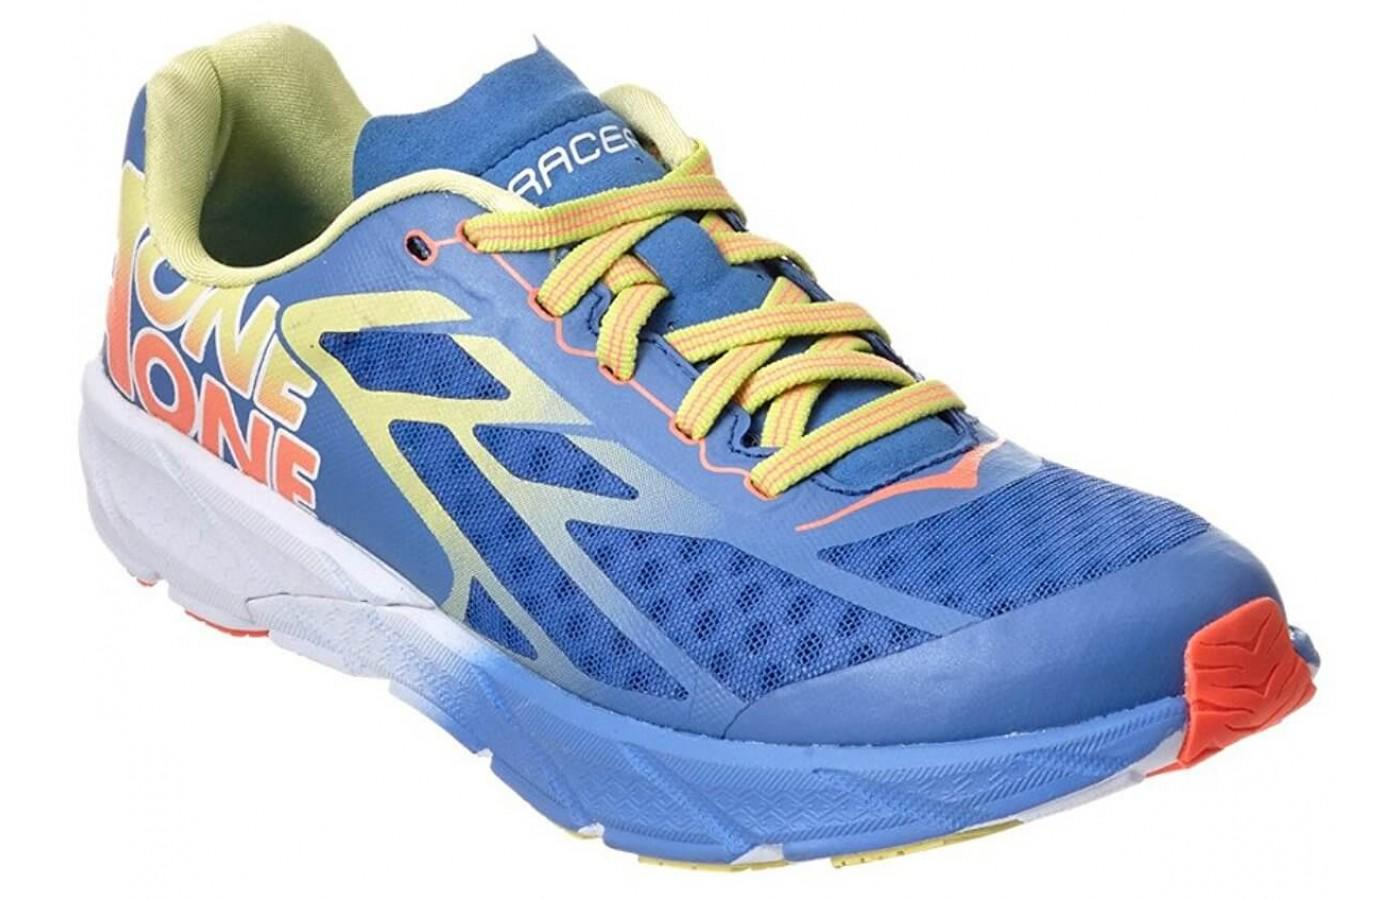 Hoka One One Tracer 2 has a unique and striking look